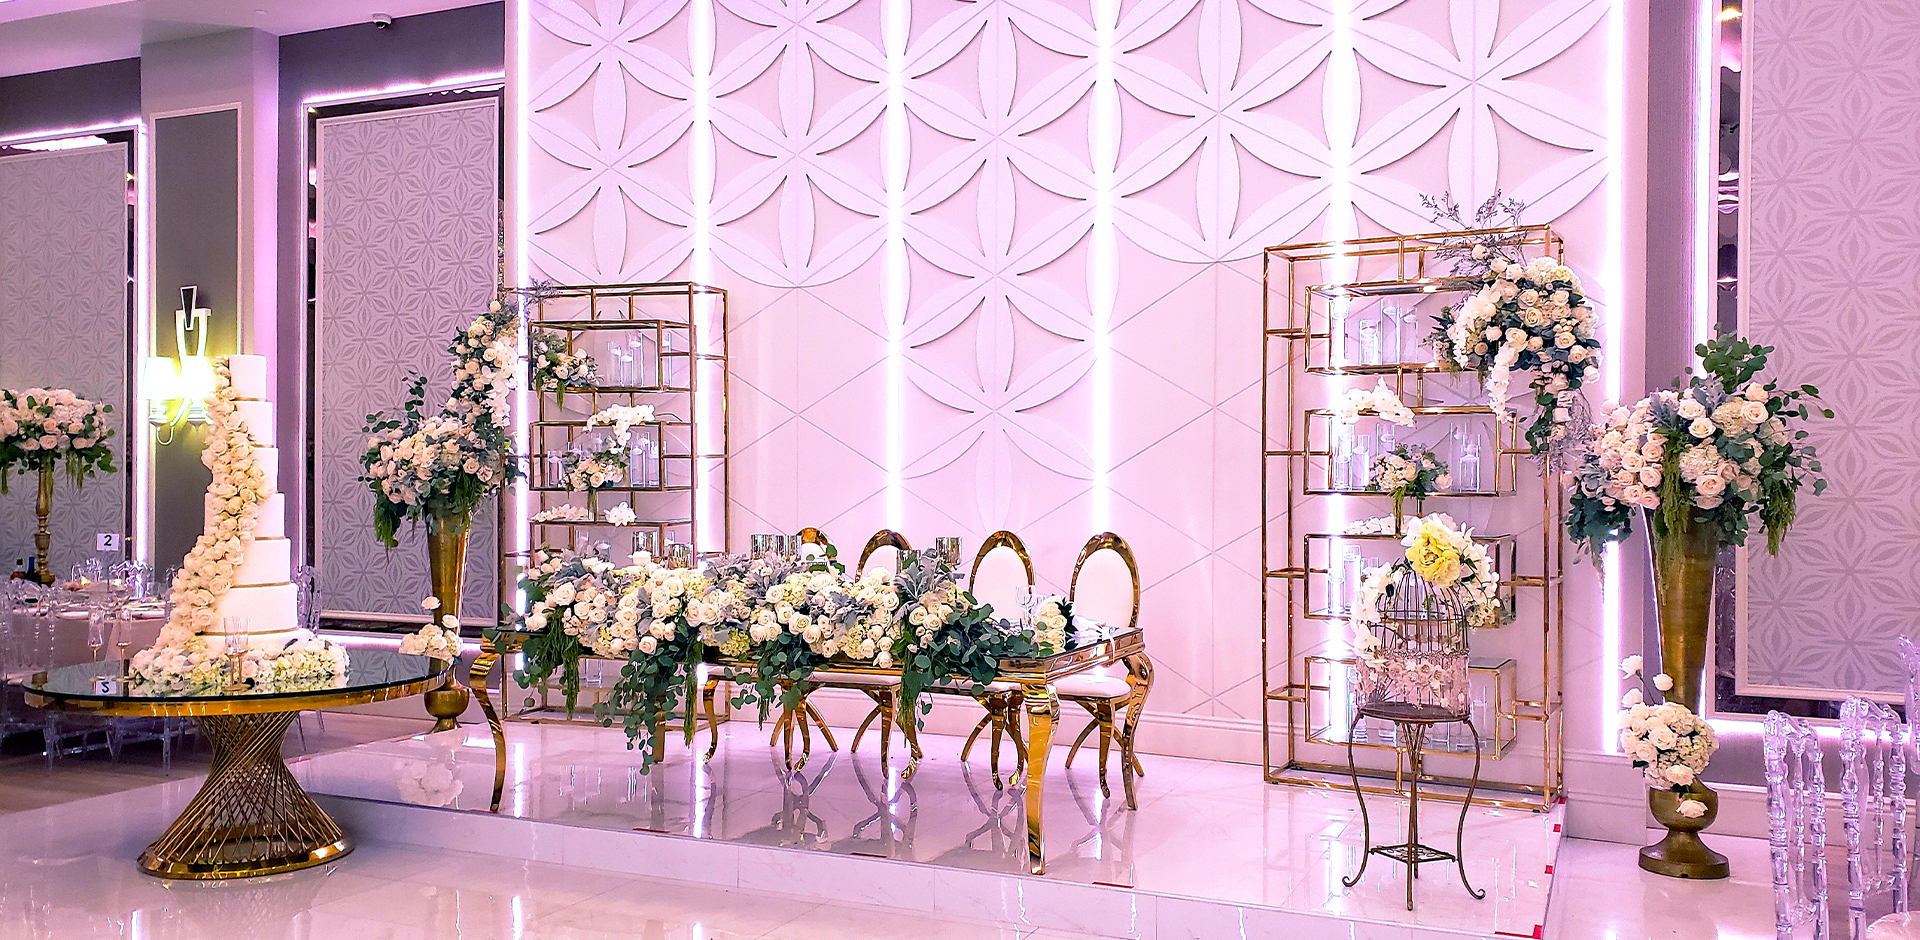 9 Things To Look For In A Los Angeles Wedding Venue